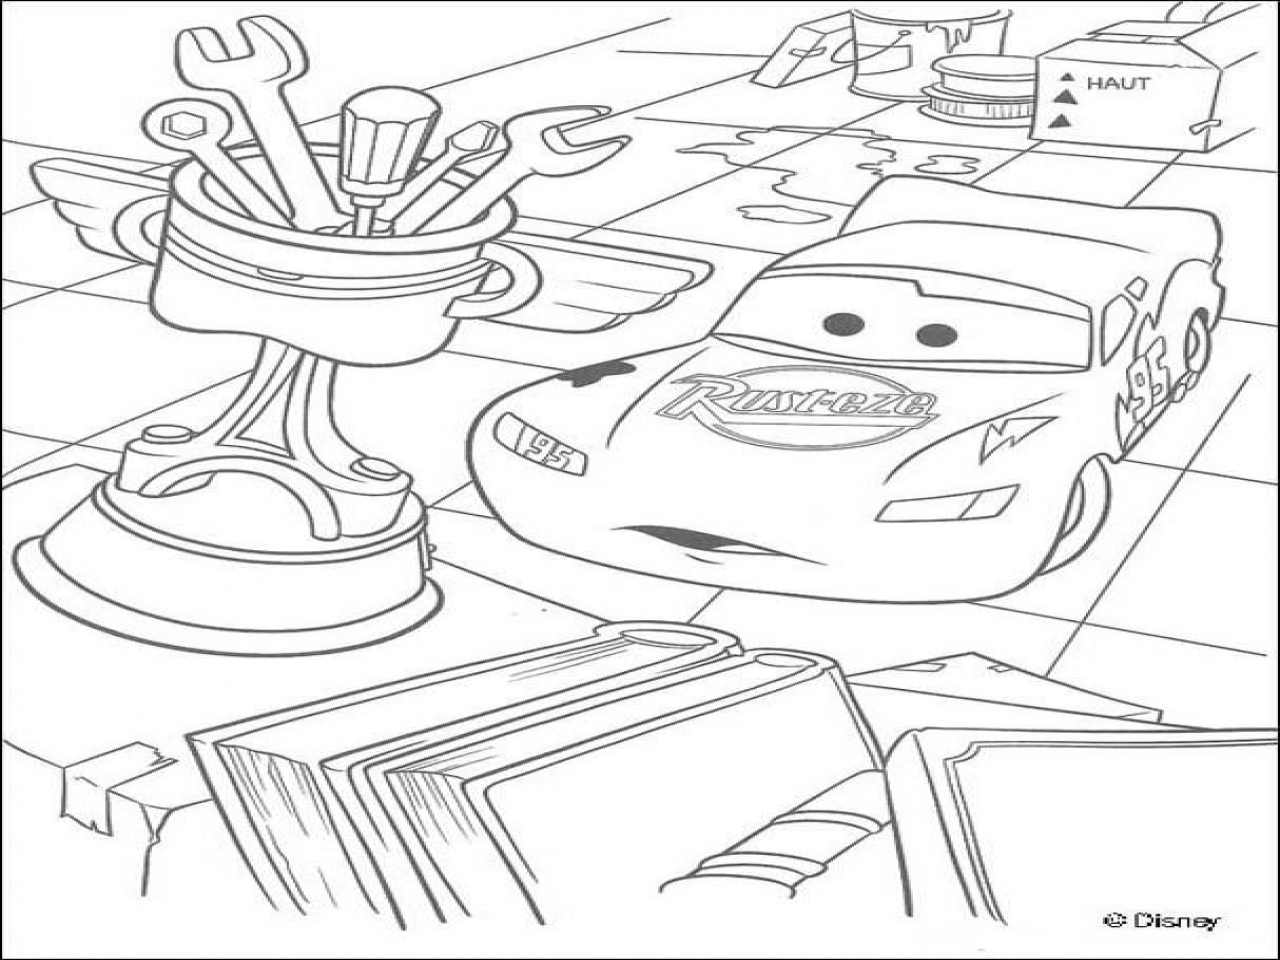 Cars the Movie Coloring Pages - Car Coloring Pages Disney Cars the Movie to Print Grig3 Download